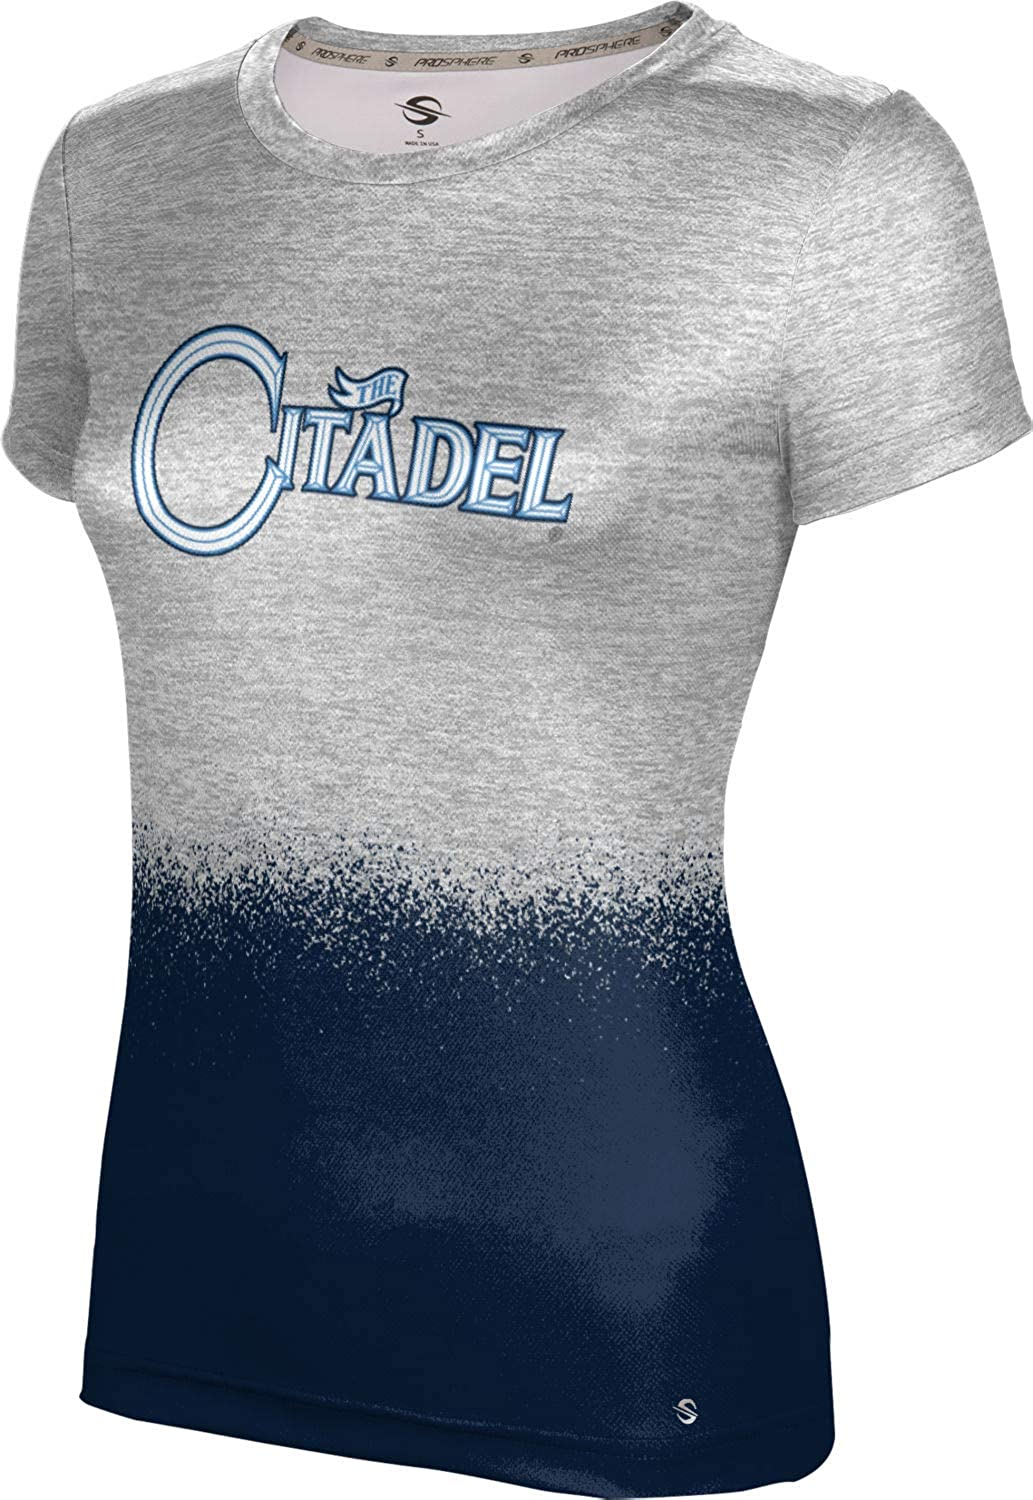 ProSphere The Citadel College Girls' Performance T-Shirt (Spray Over)